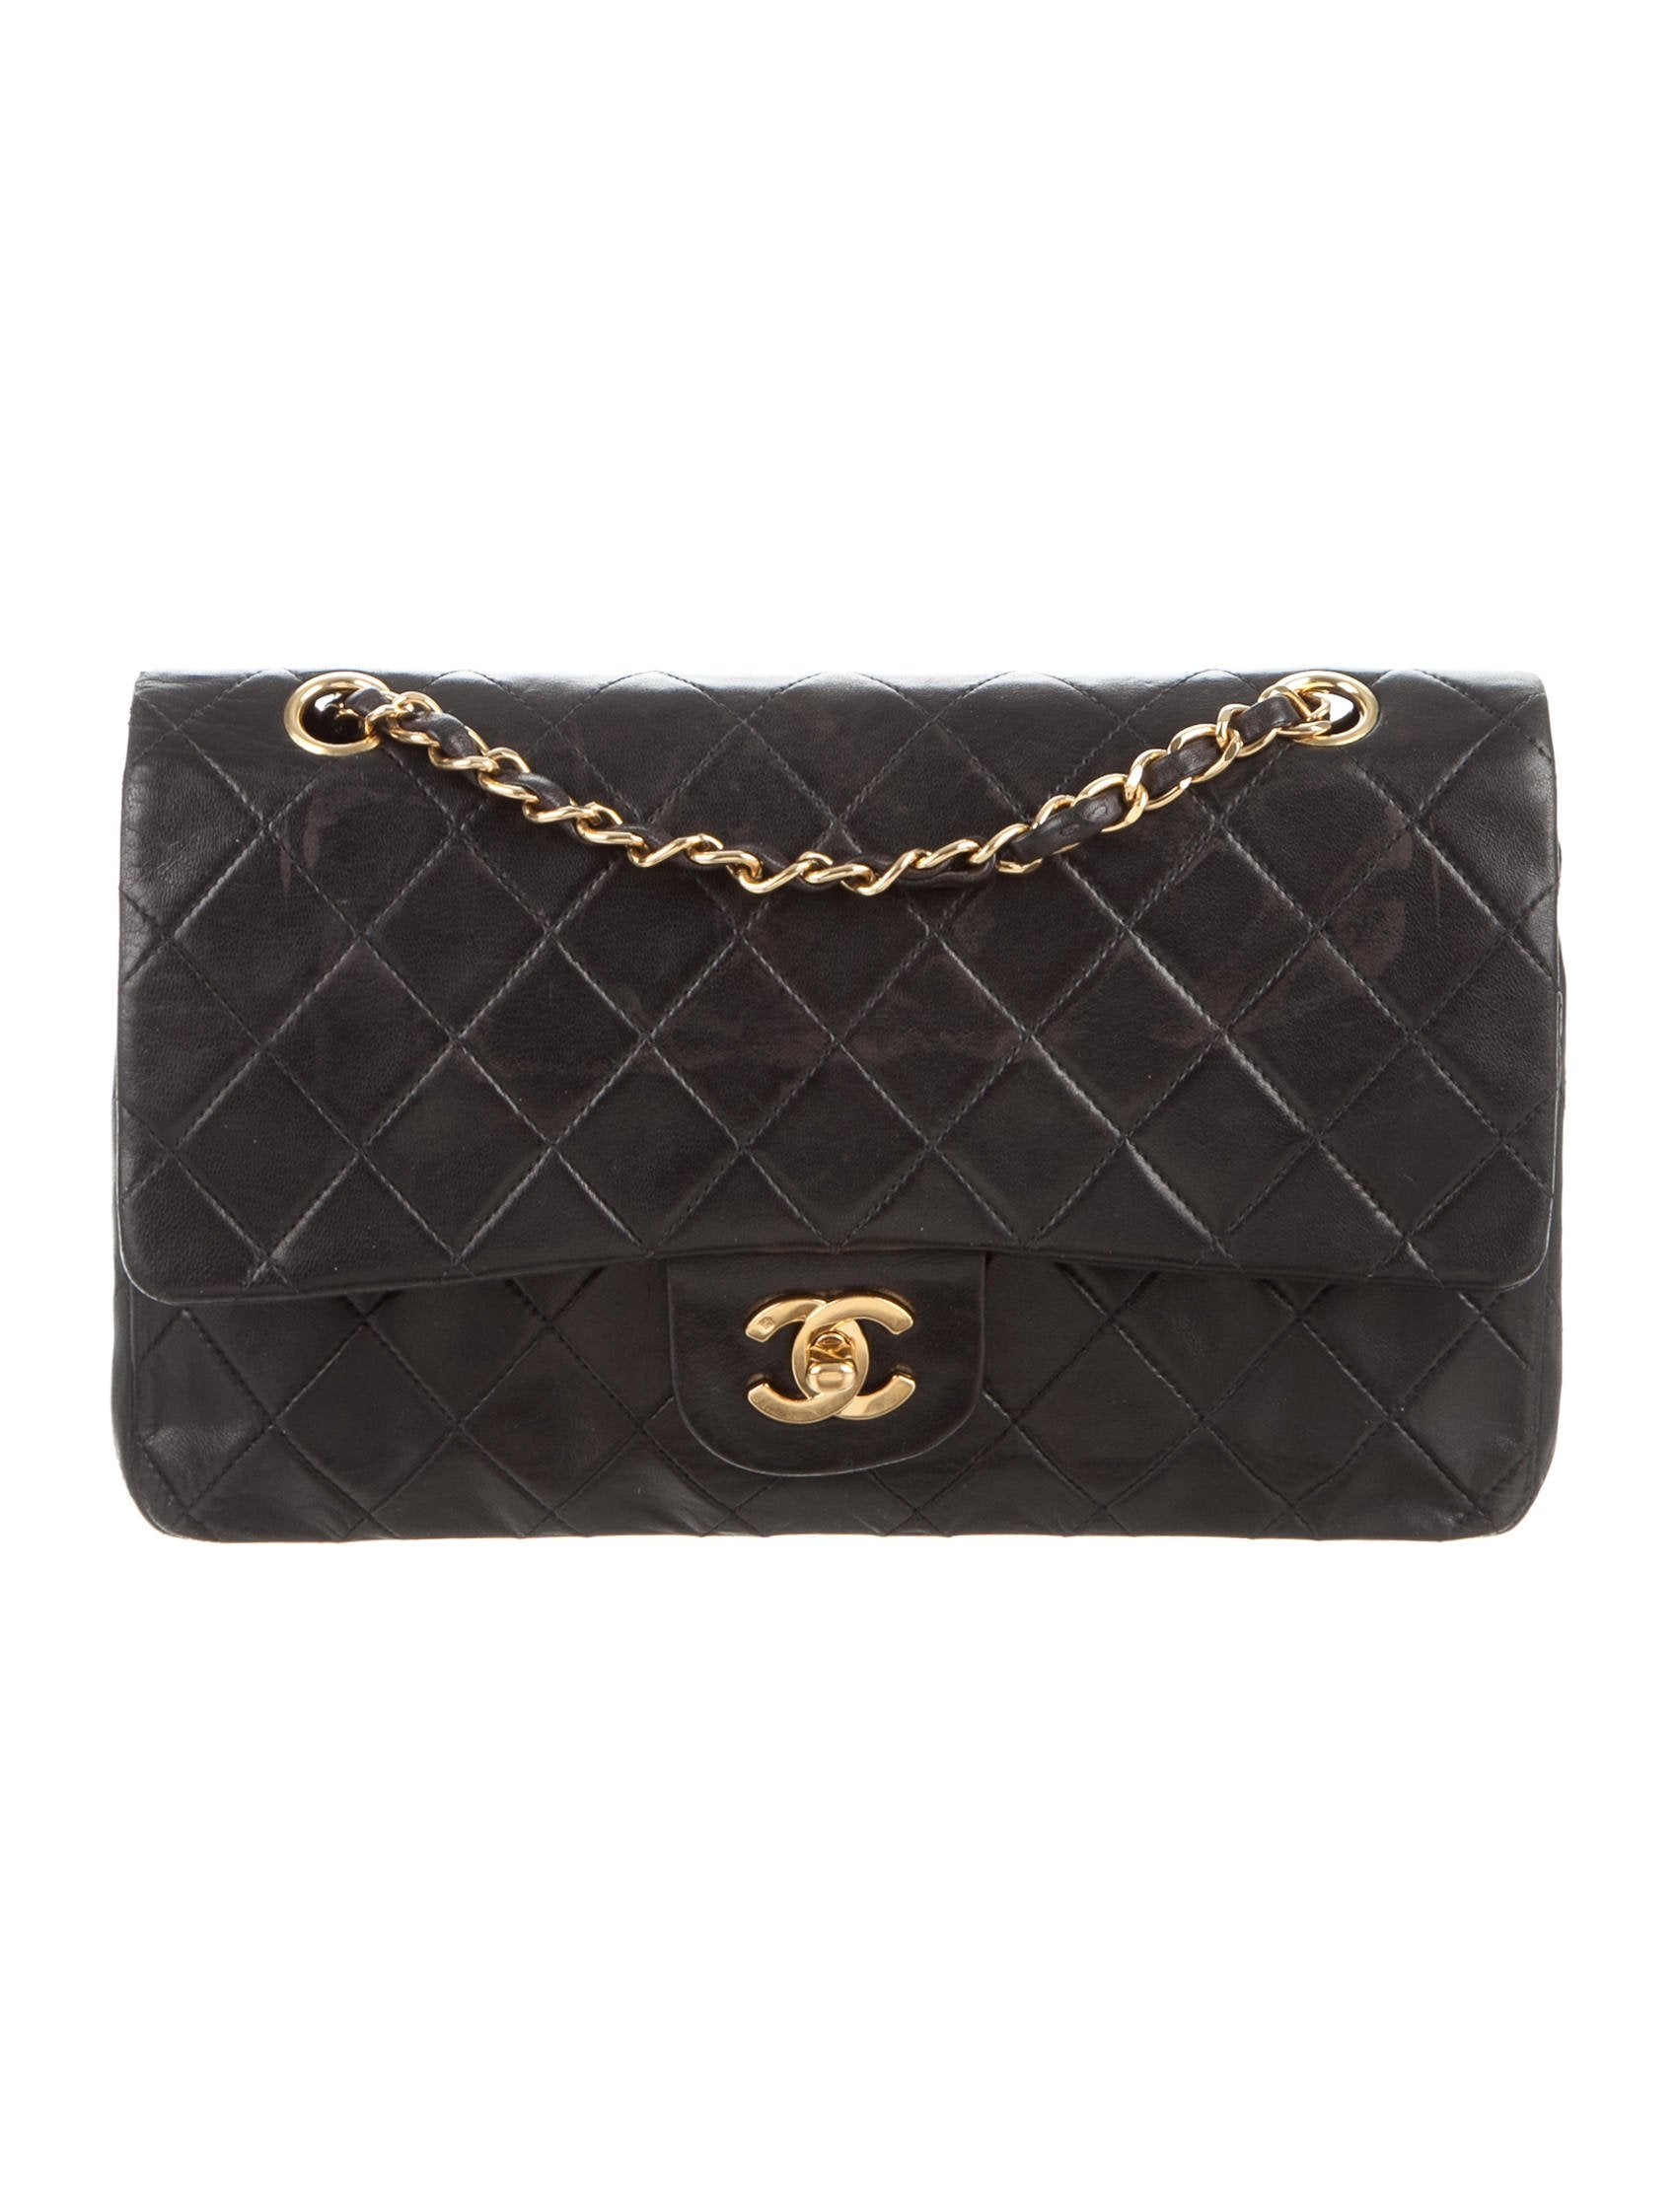 Contemporary Flatware Chanel Classic Medium Double Flap Bag Handbags